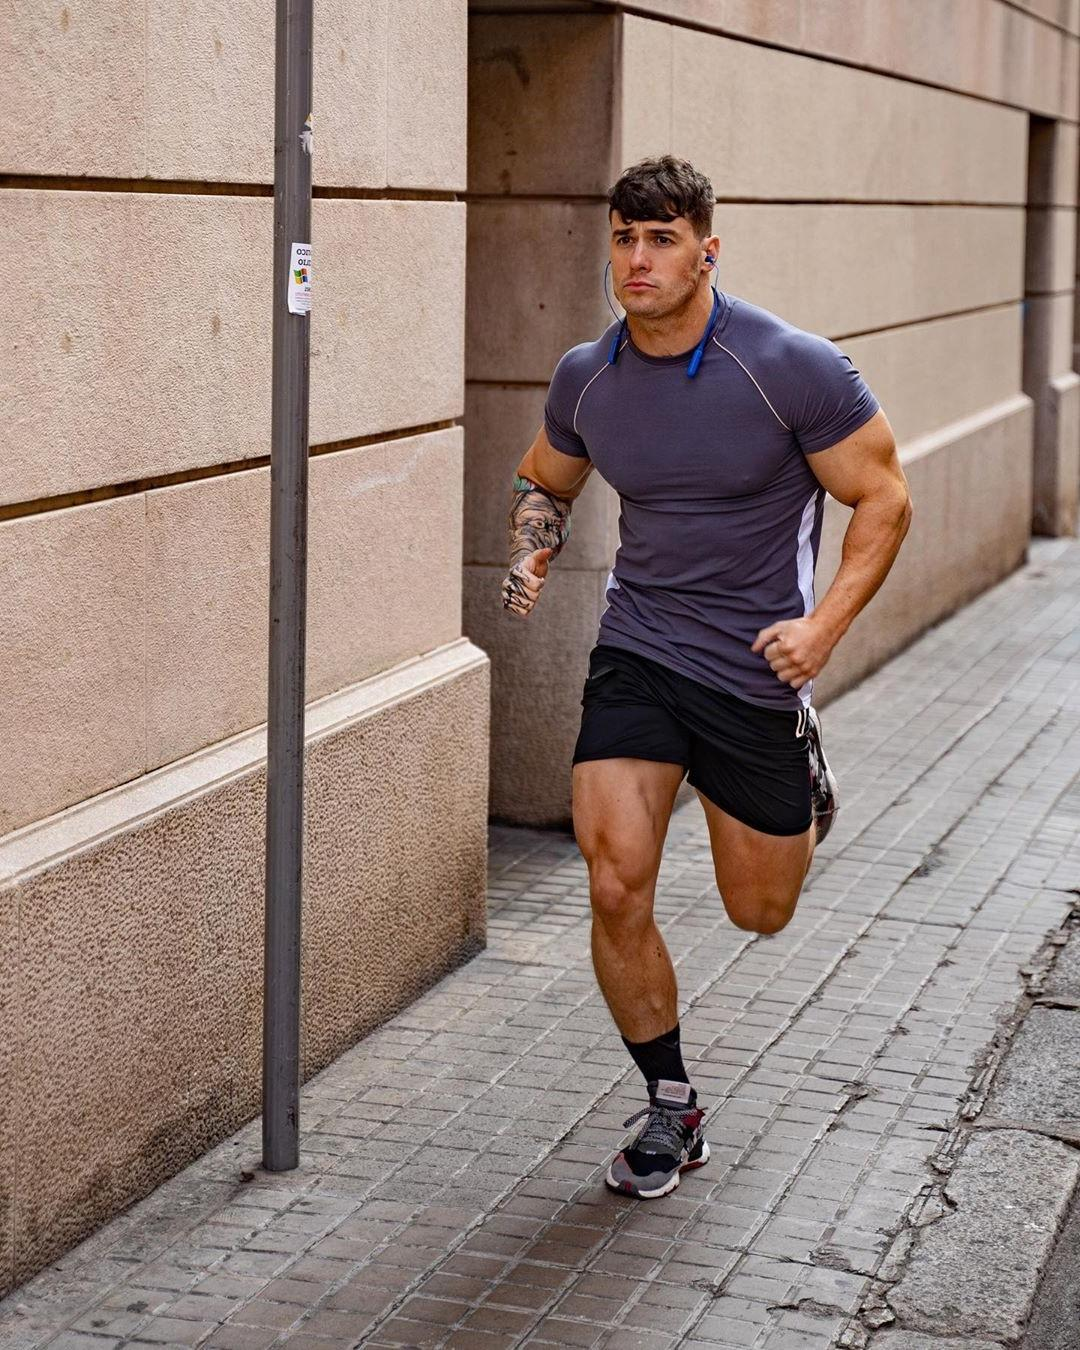 strong-legs-thigh-muscle-shirt-hunky-male-street-runner